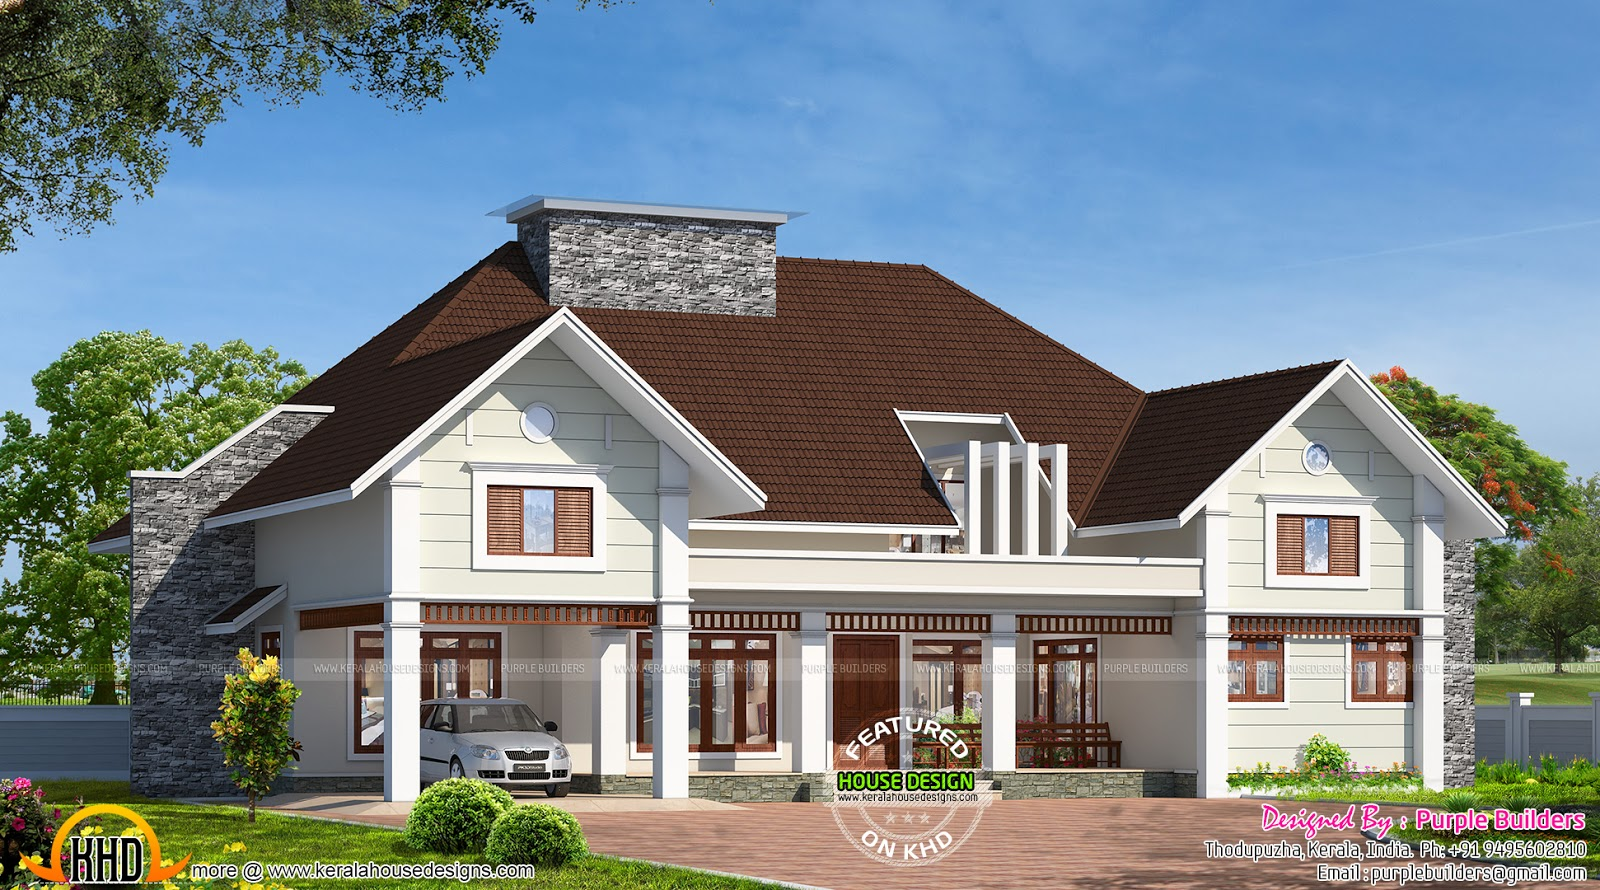 Bungalow House In Kerala on Www Open Floor Plans For Small Houses